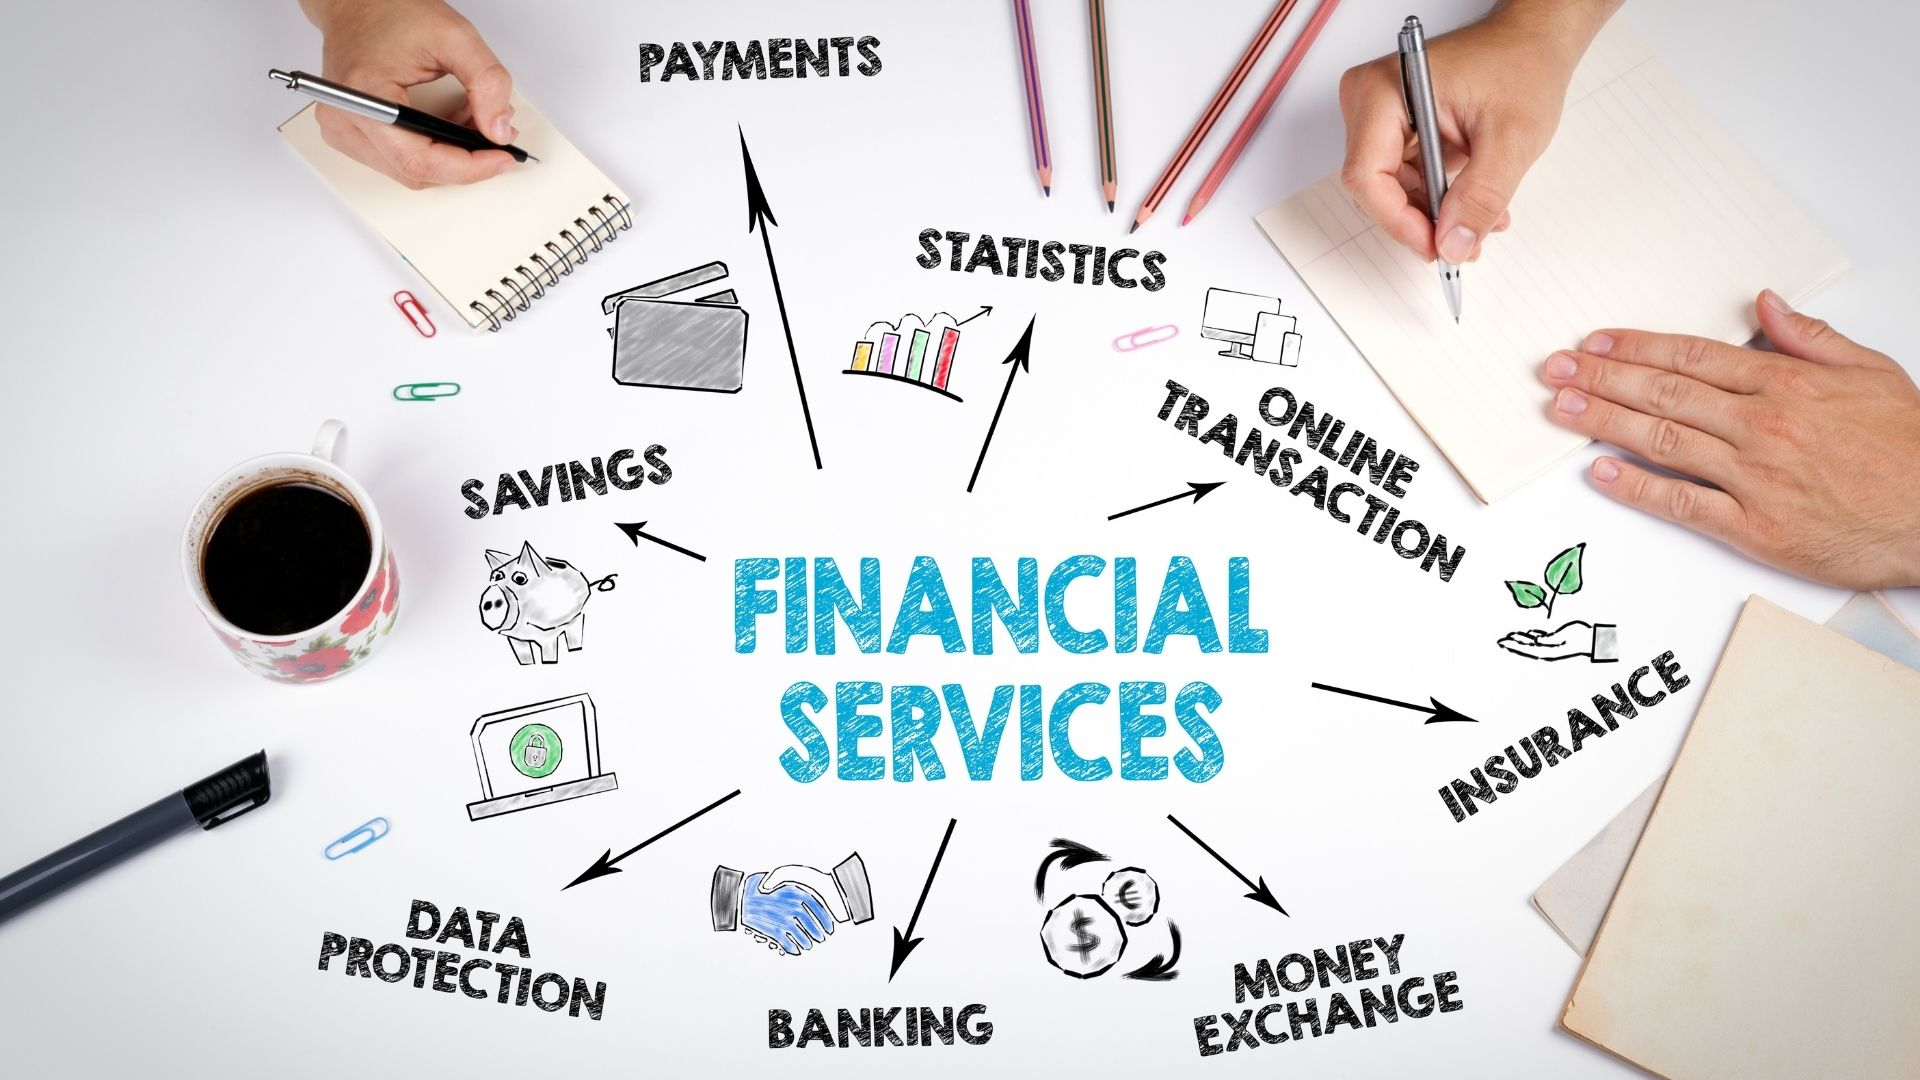 88% of financial services firms in the UK are under pressure to make decisions faster 14